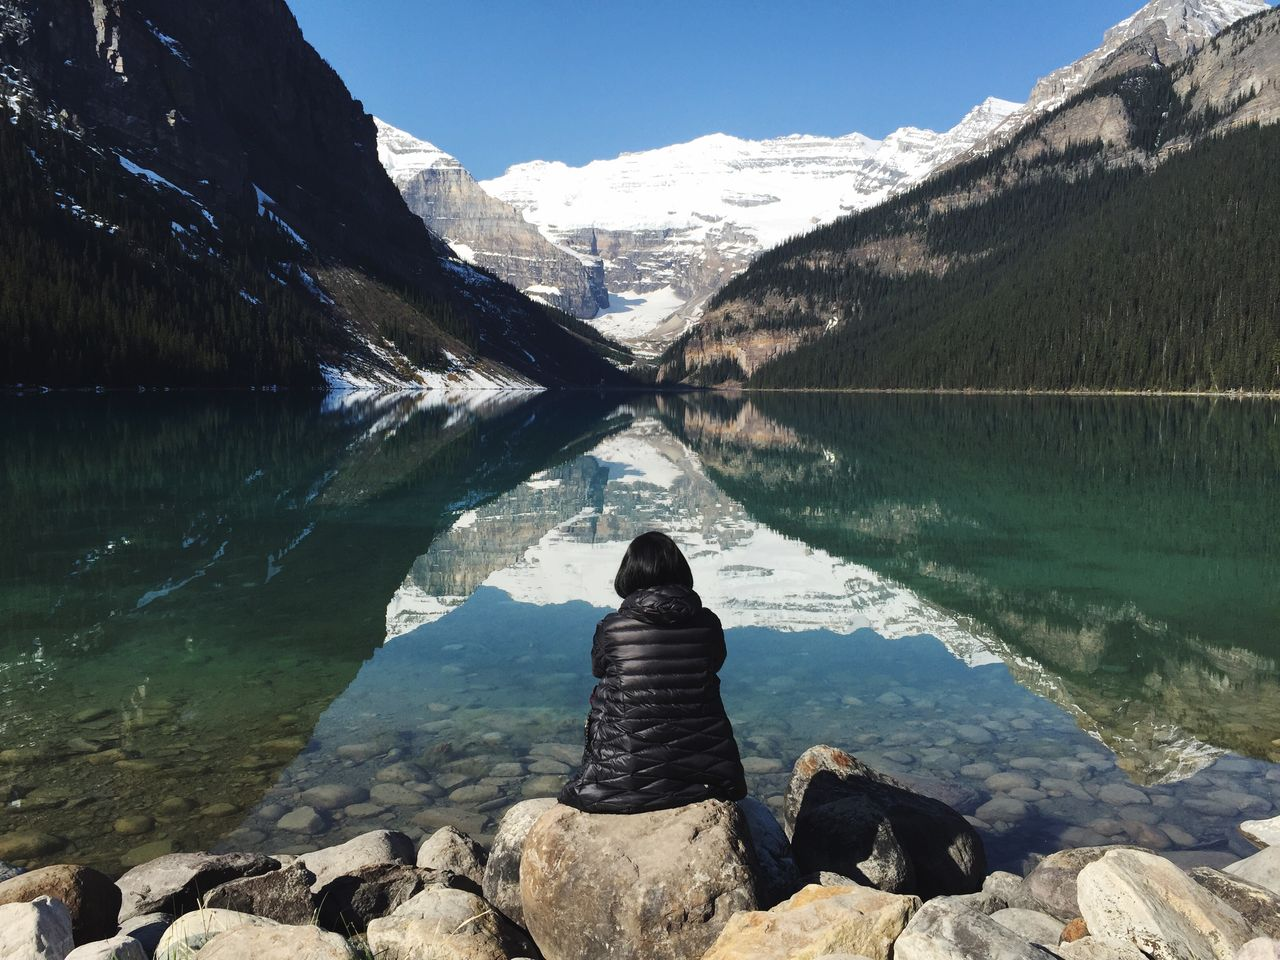 Rear view of woman sitting on rock against calm moraine lake at banff national park